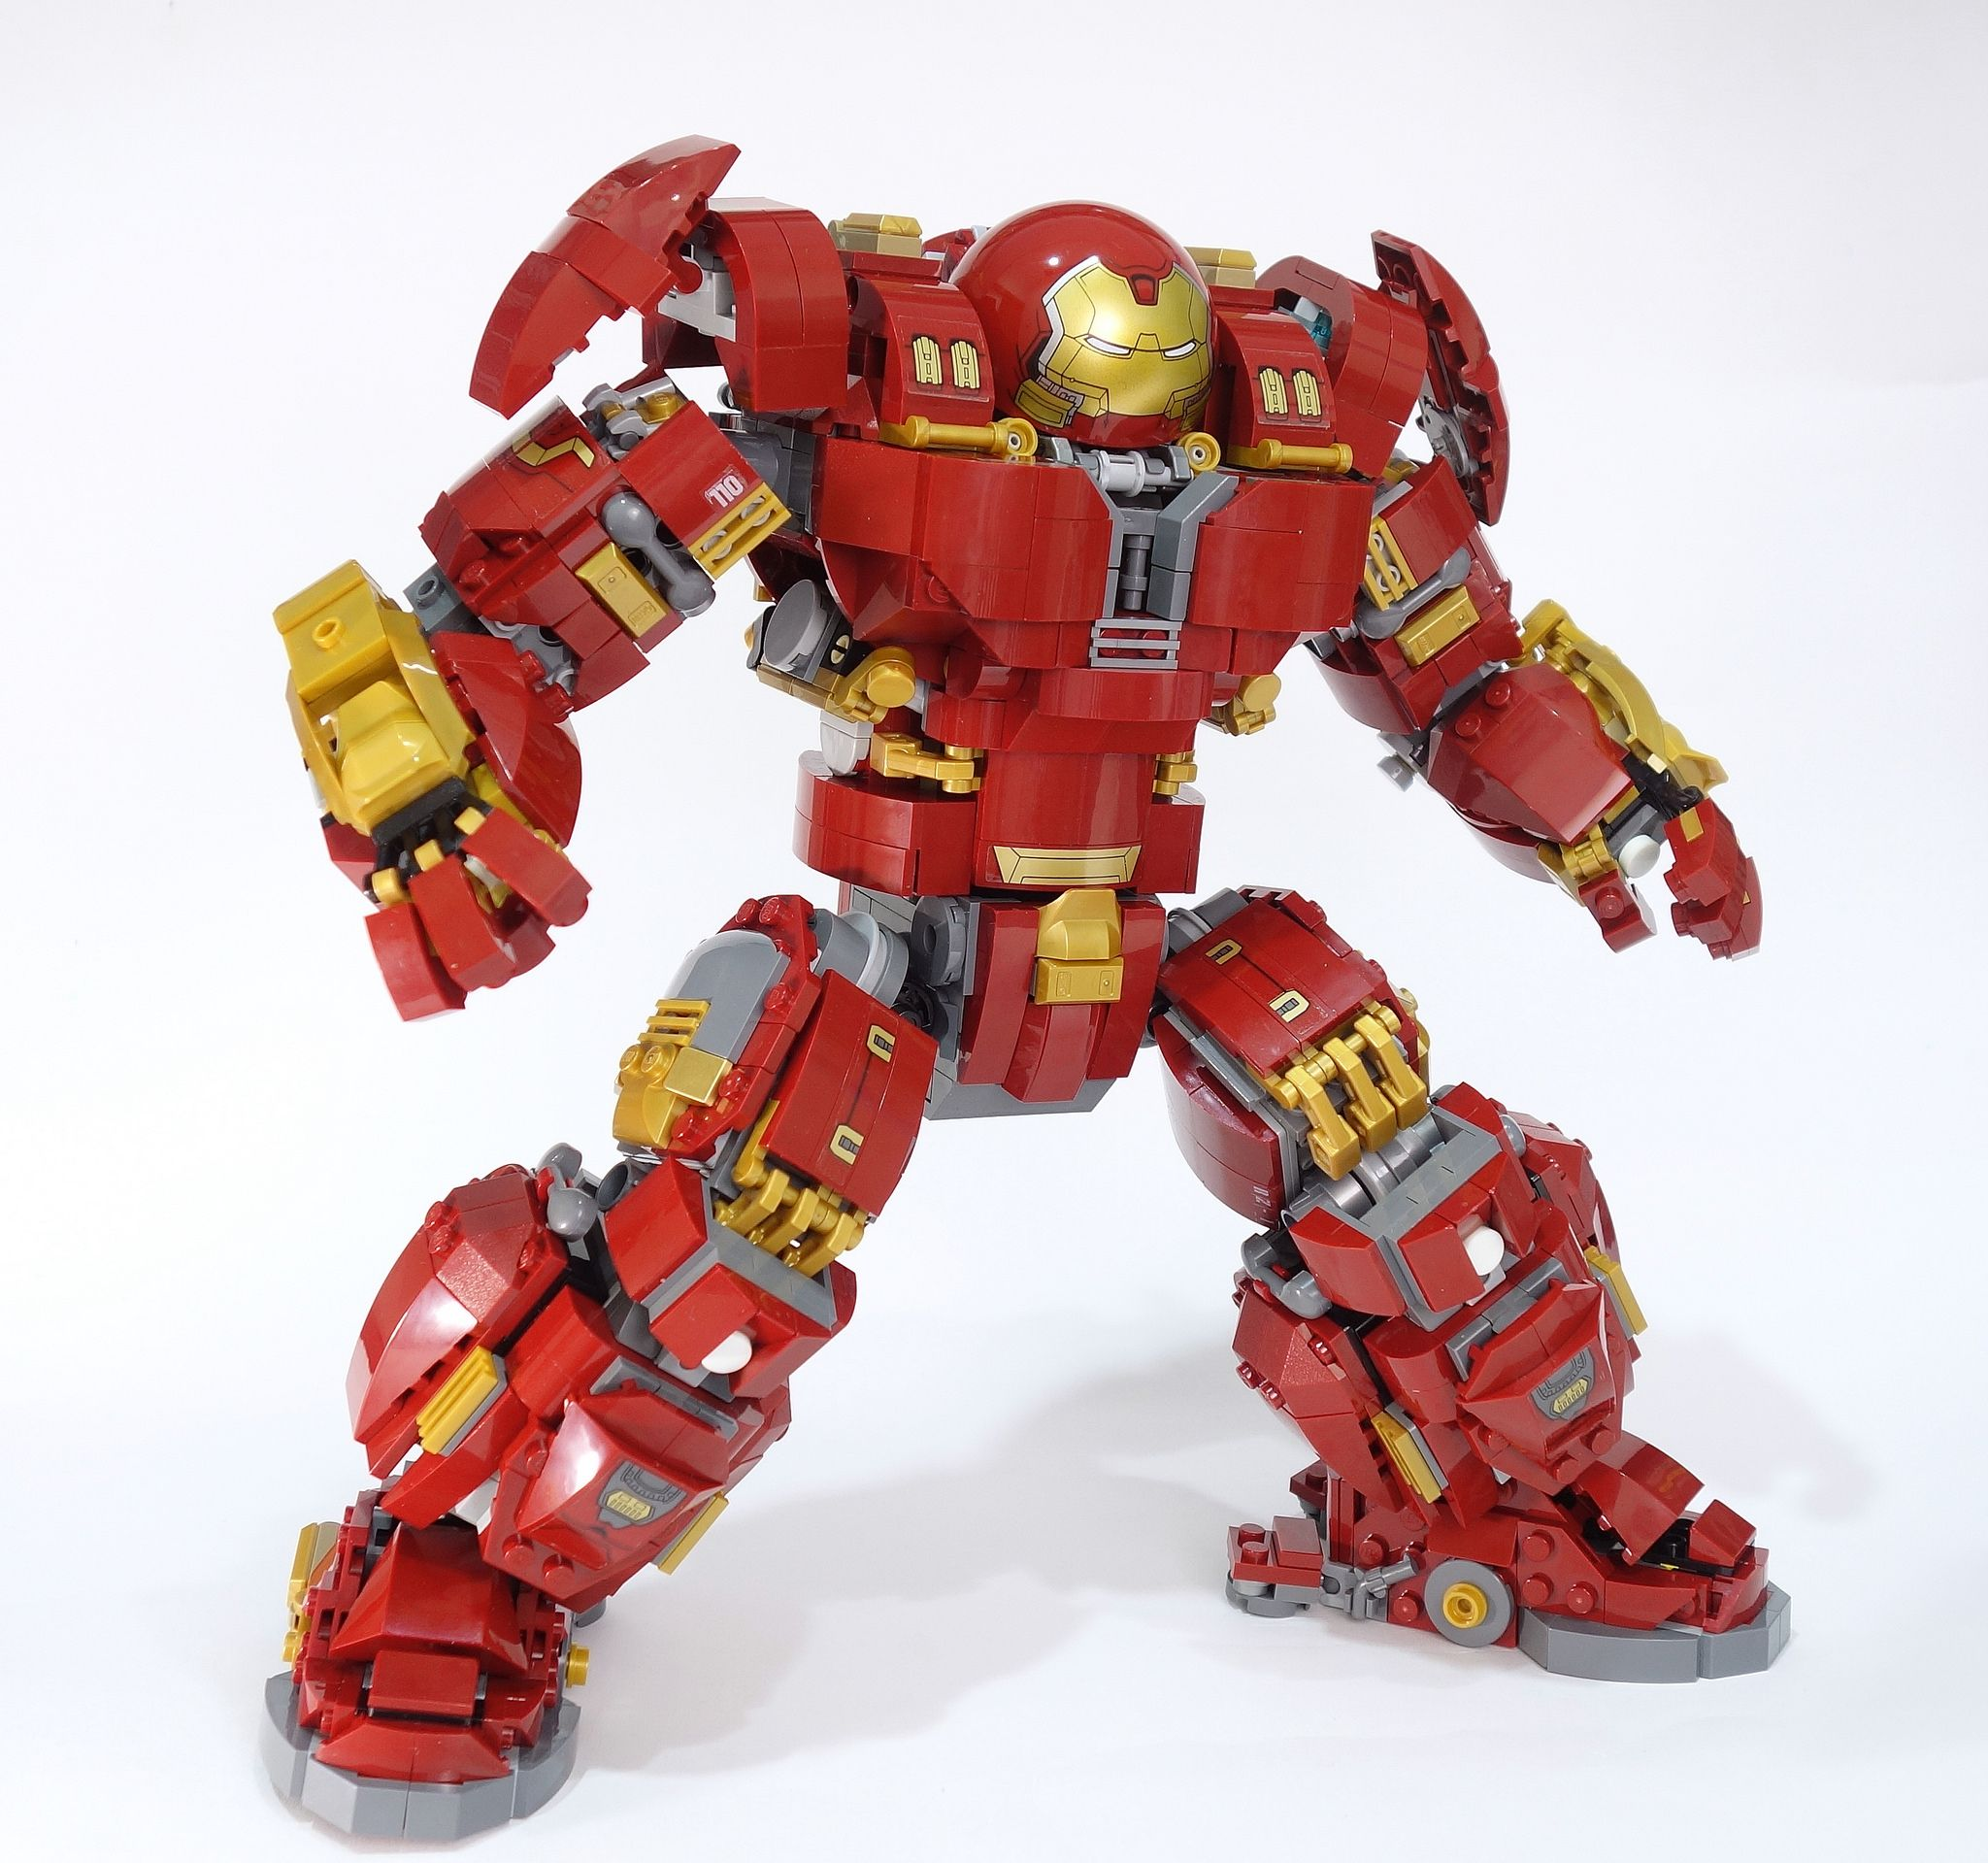 Ucs Hulkbuster Mod 05 Lego Lego Creations And Lego Mecha